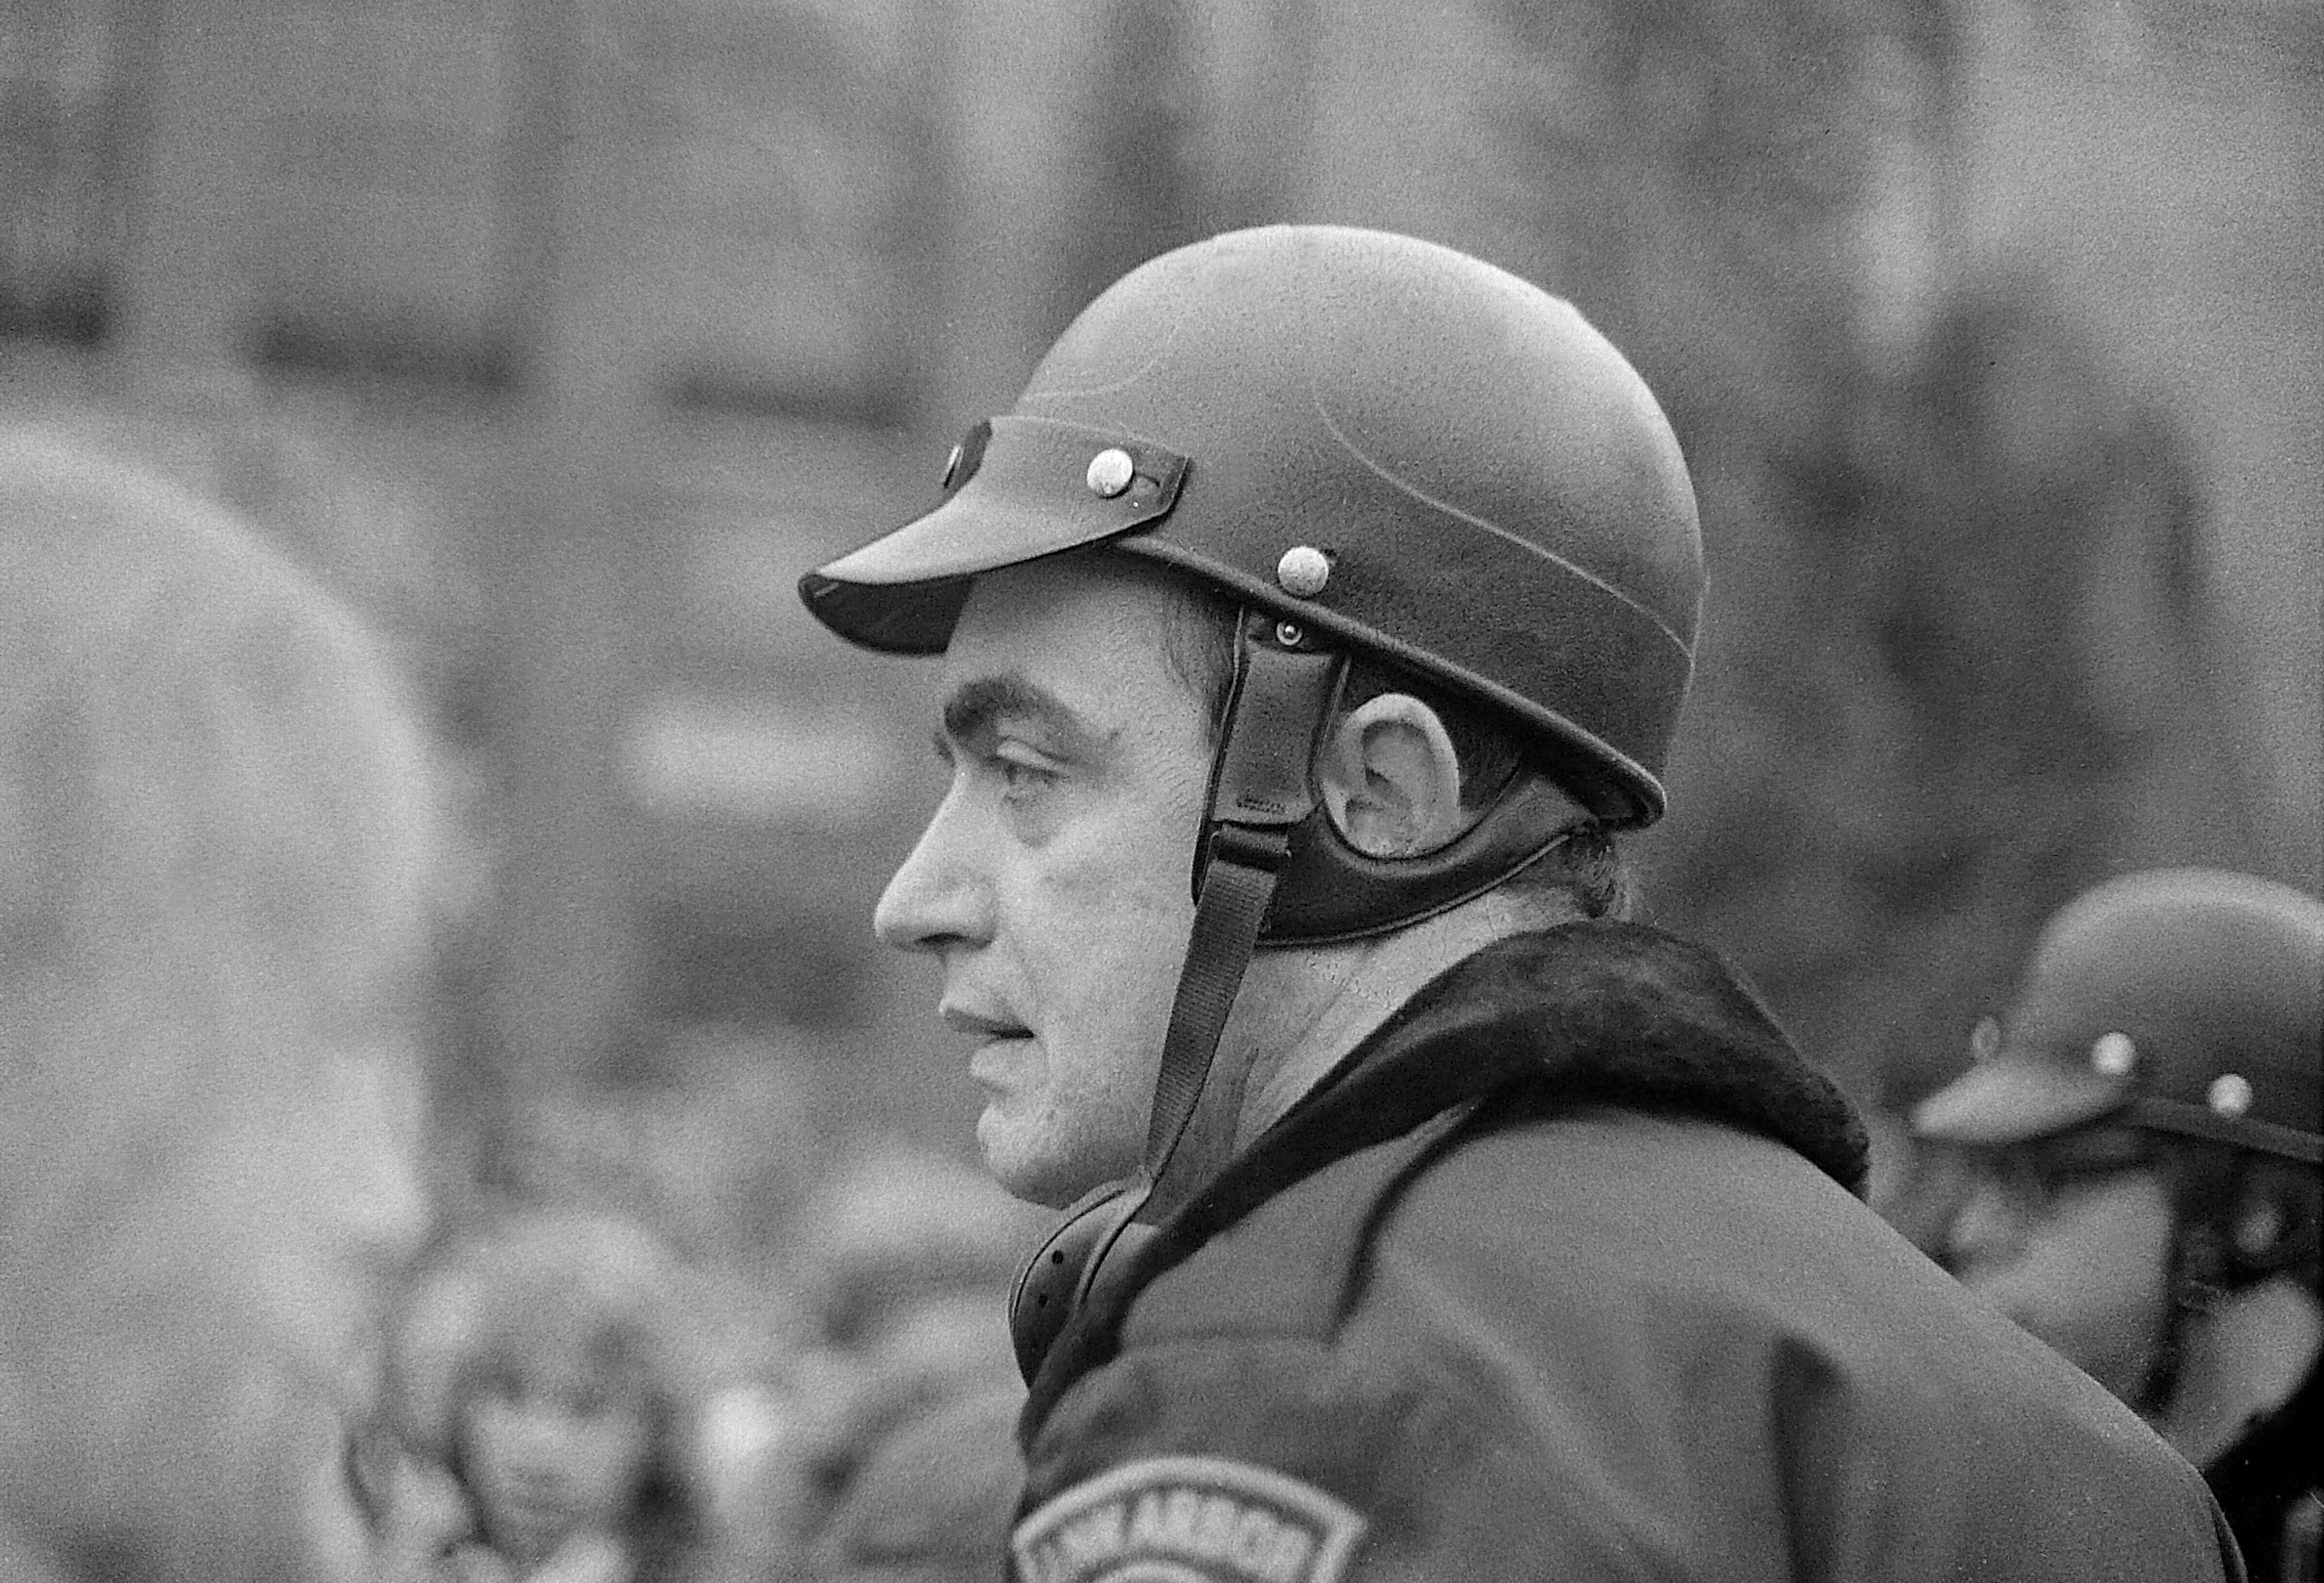 Walter Lunsford, Ann Arbor Police Department, At Hash Bash, April 1978 image